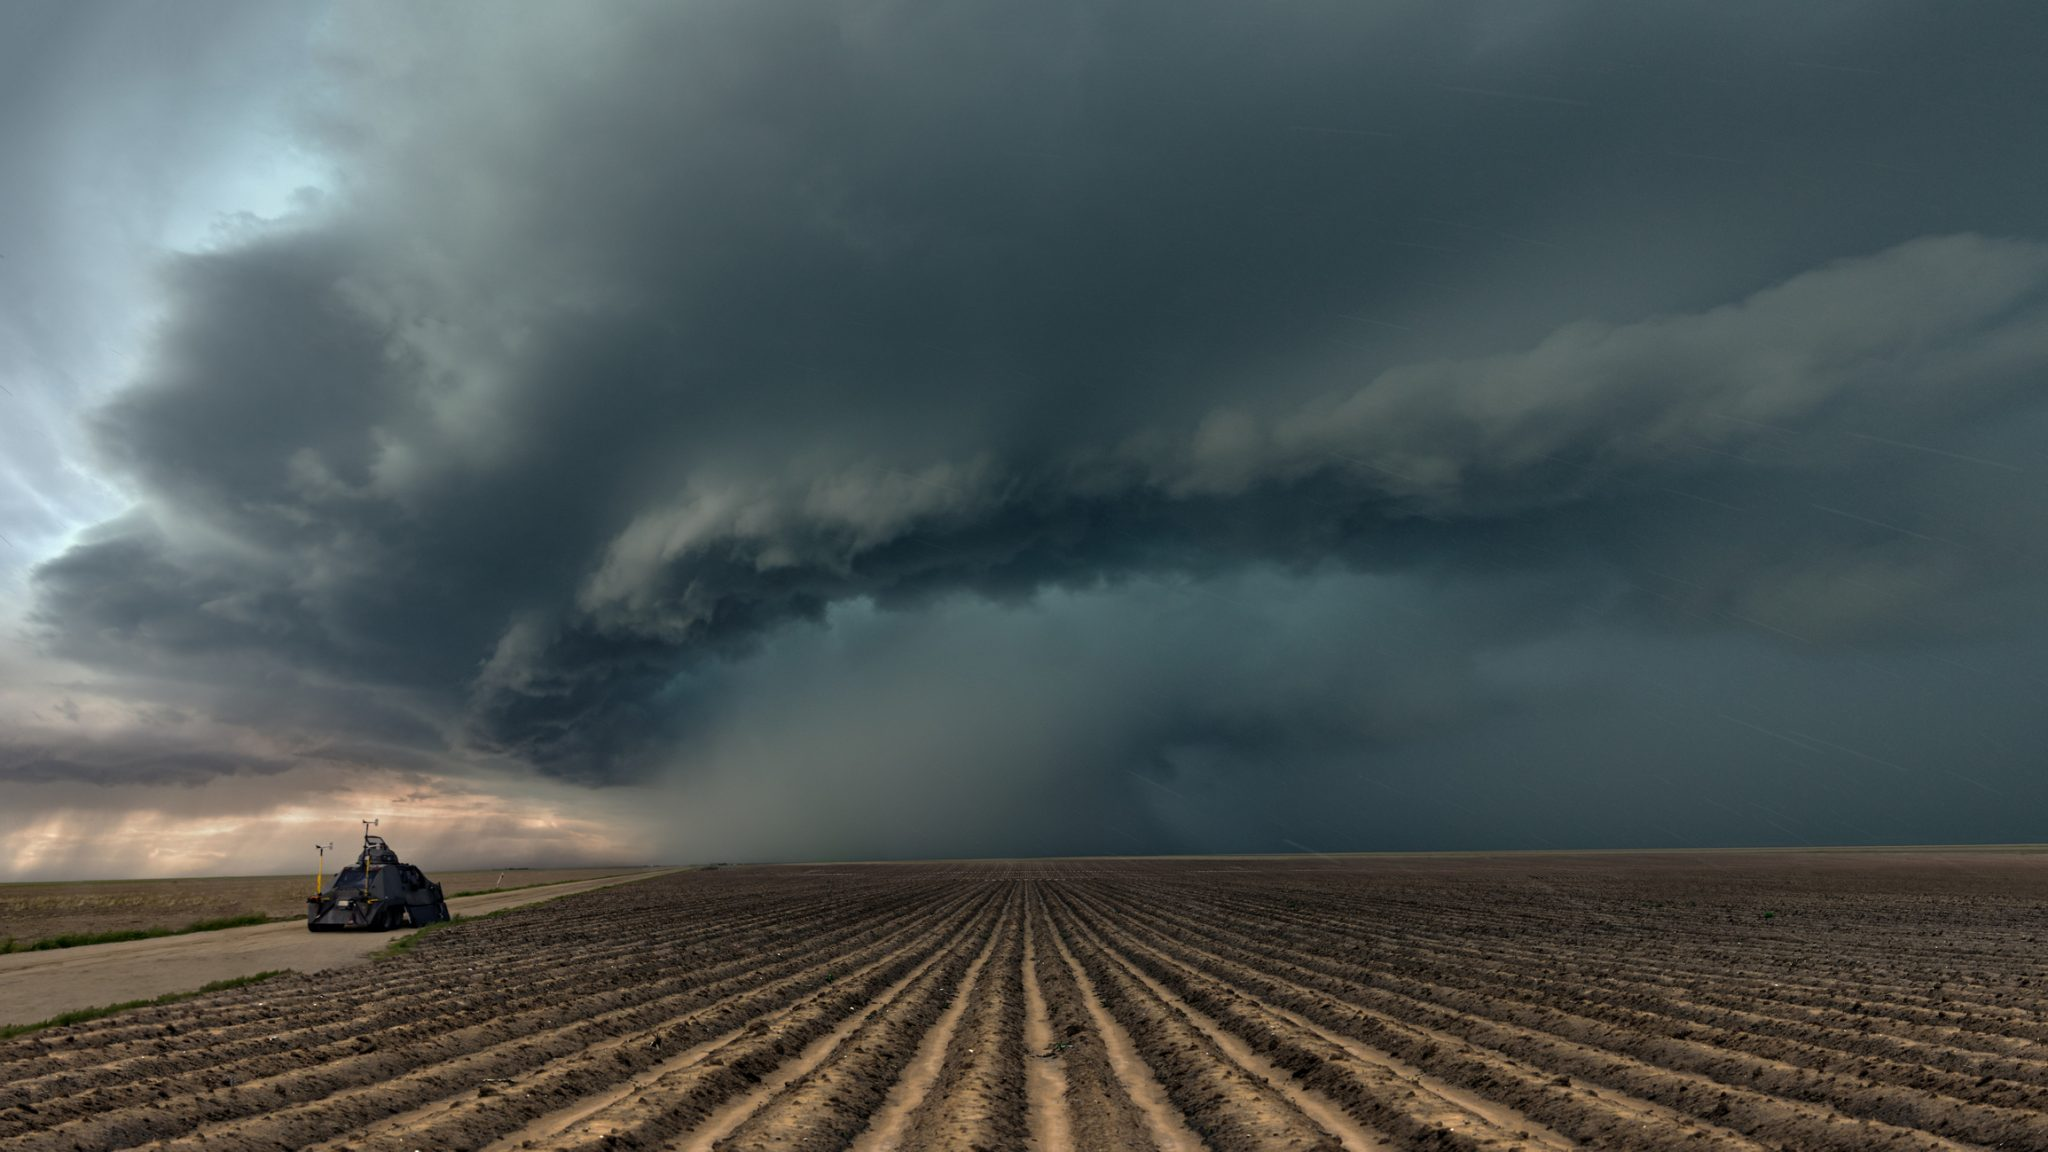 Severe weather over a row crop field